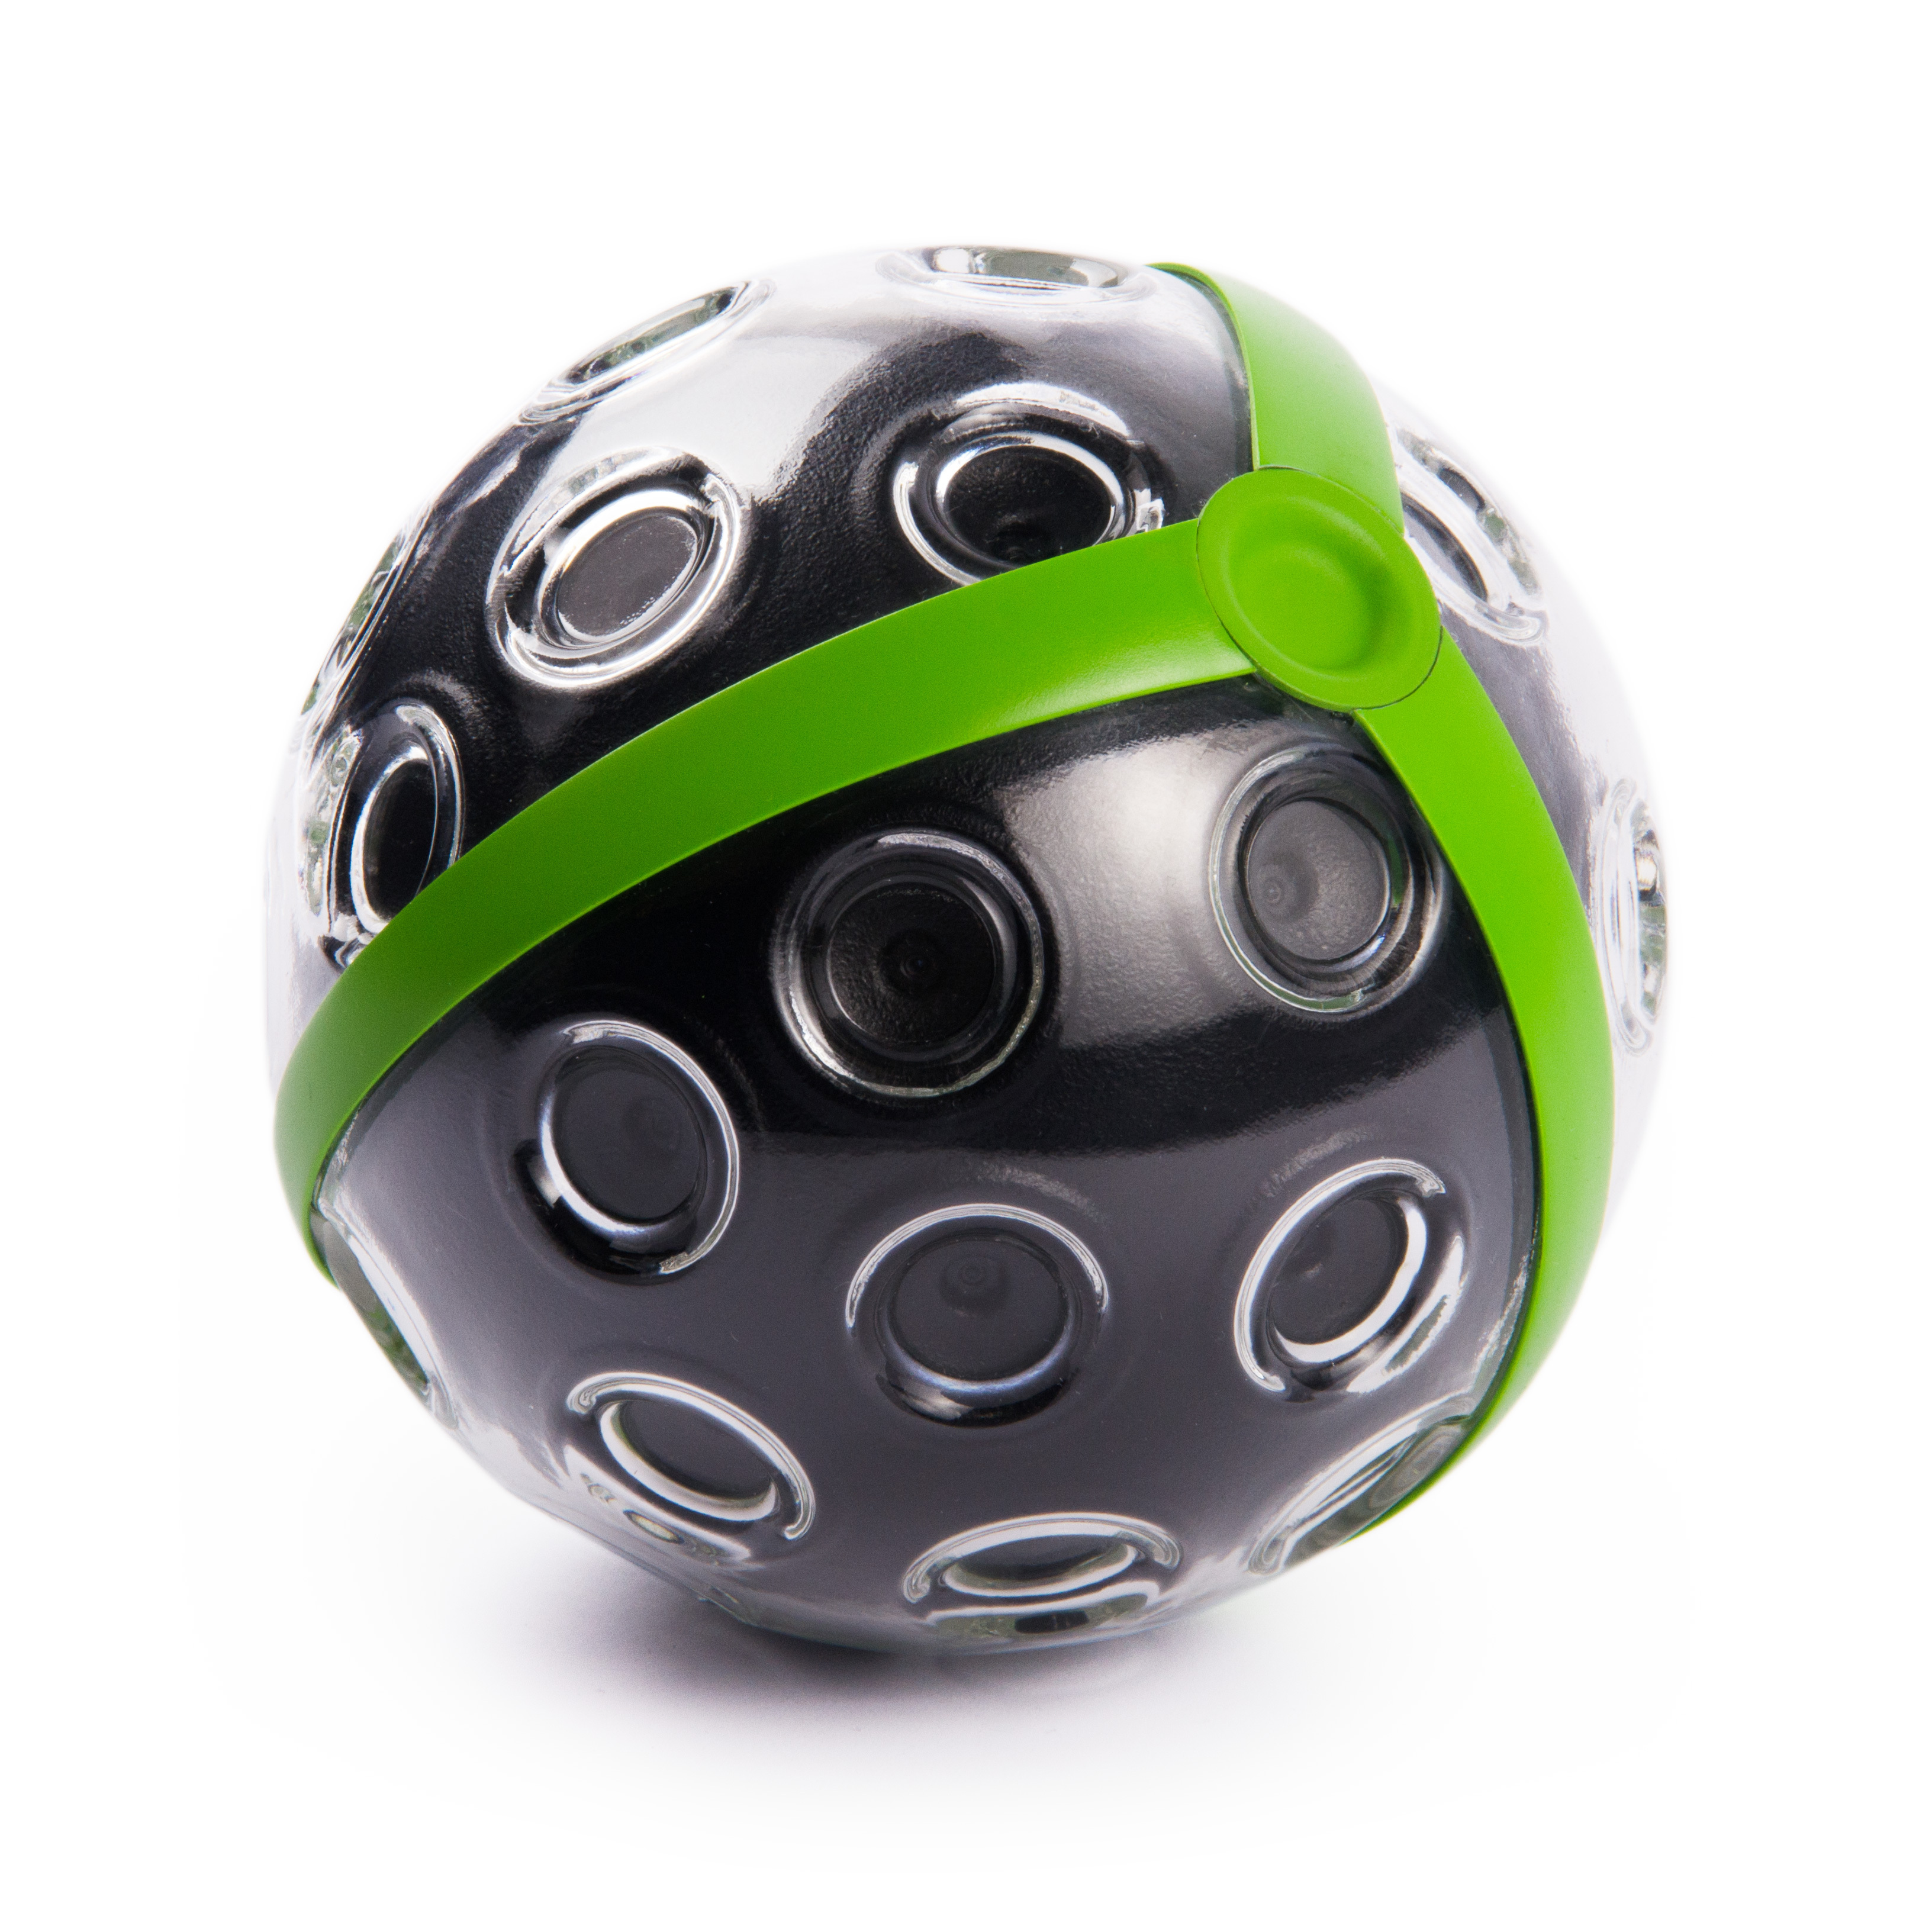 Panono throwable panoramic ball camera